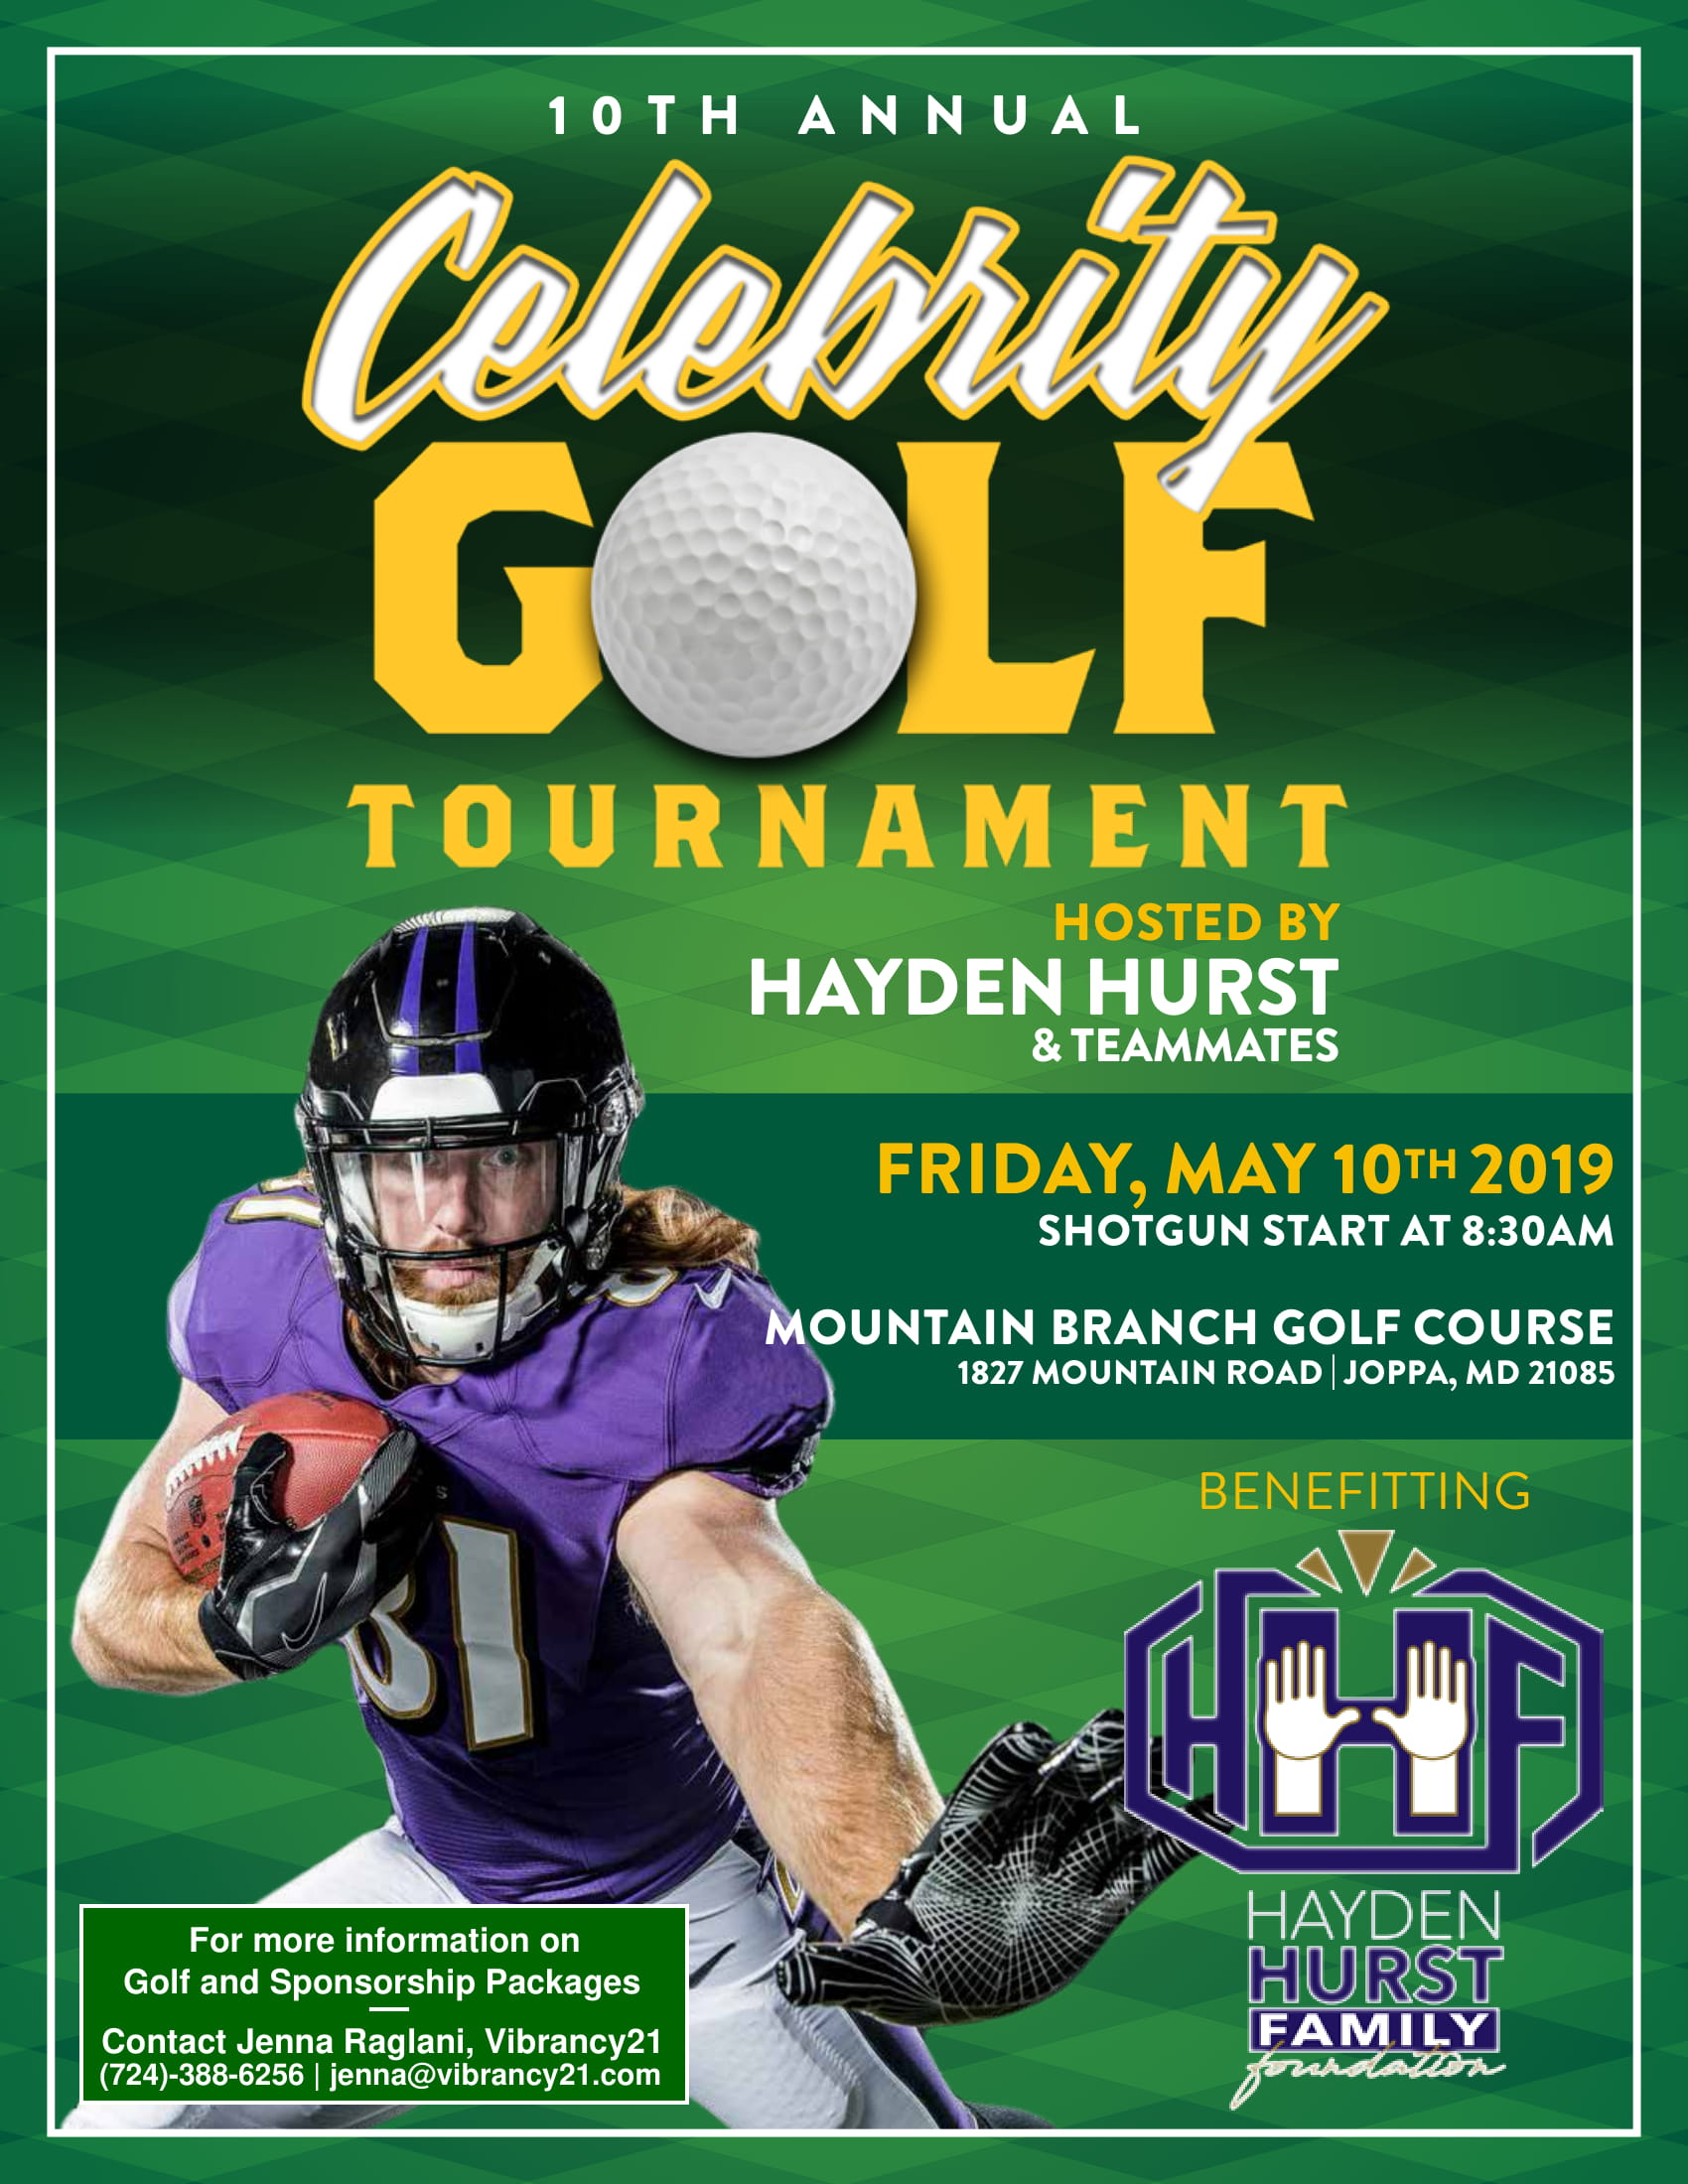 Hayden_Hurst_Celebrity_Golf_Outing (1).jpg